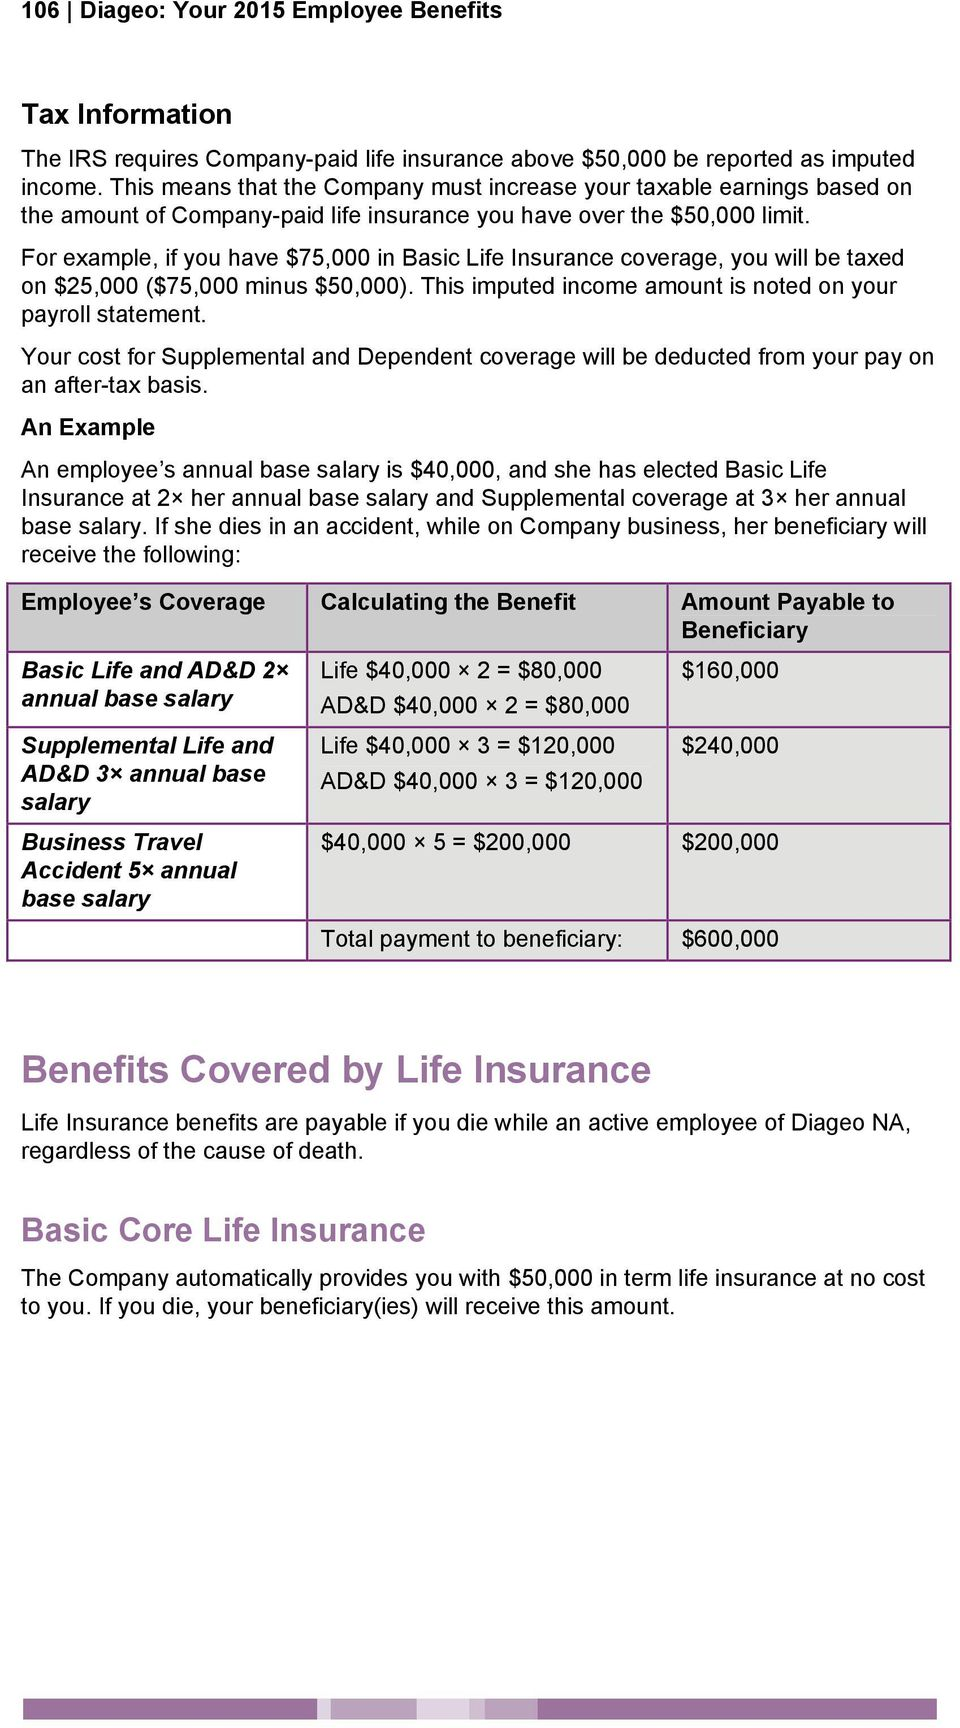 For example, if you have $75,000 in Basic Life Insurance coverage, you will be taxed on $25,000 ($75,000 minus $50,000). This imputed income amount is noted on your payroll statement.